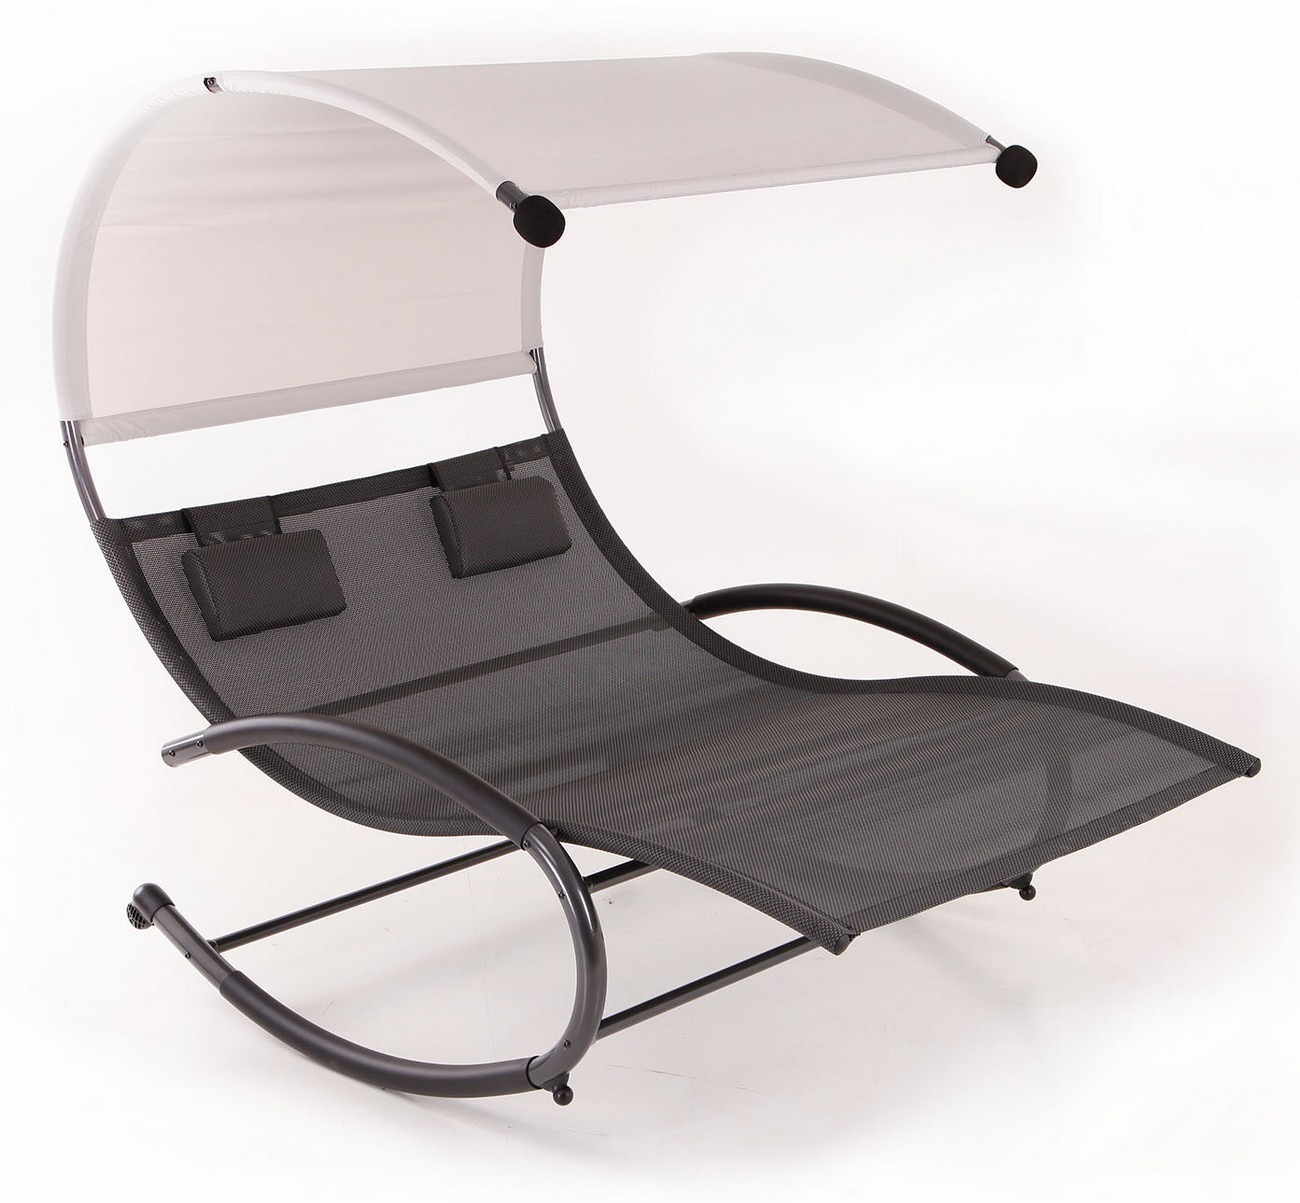 double lounge chair upholstered office on casters chaise rocker patio furniture seat canopy